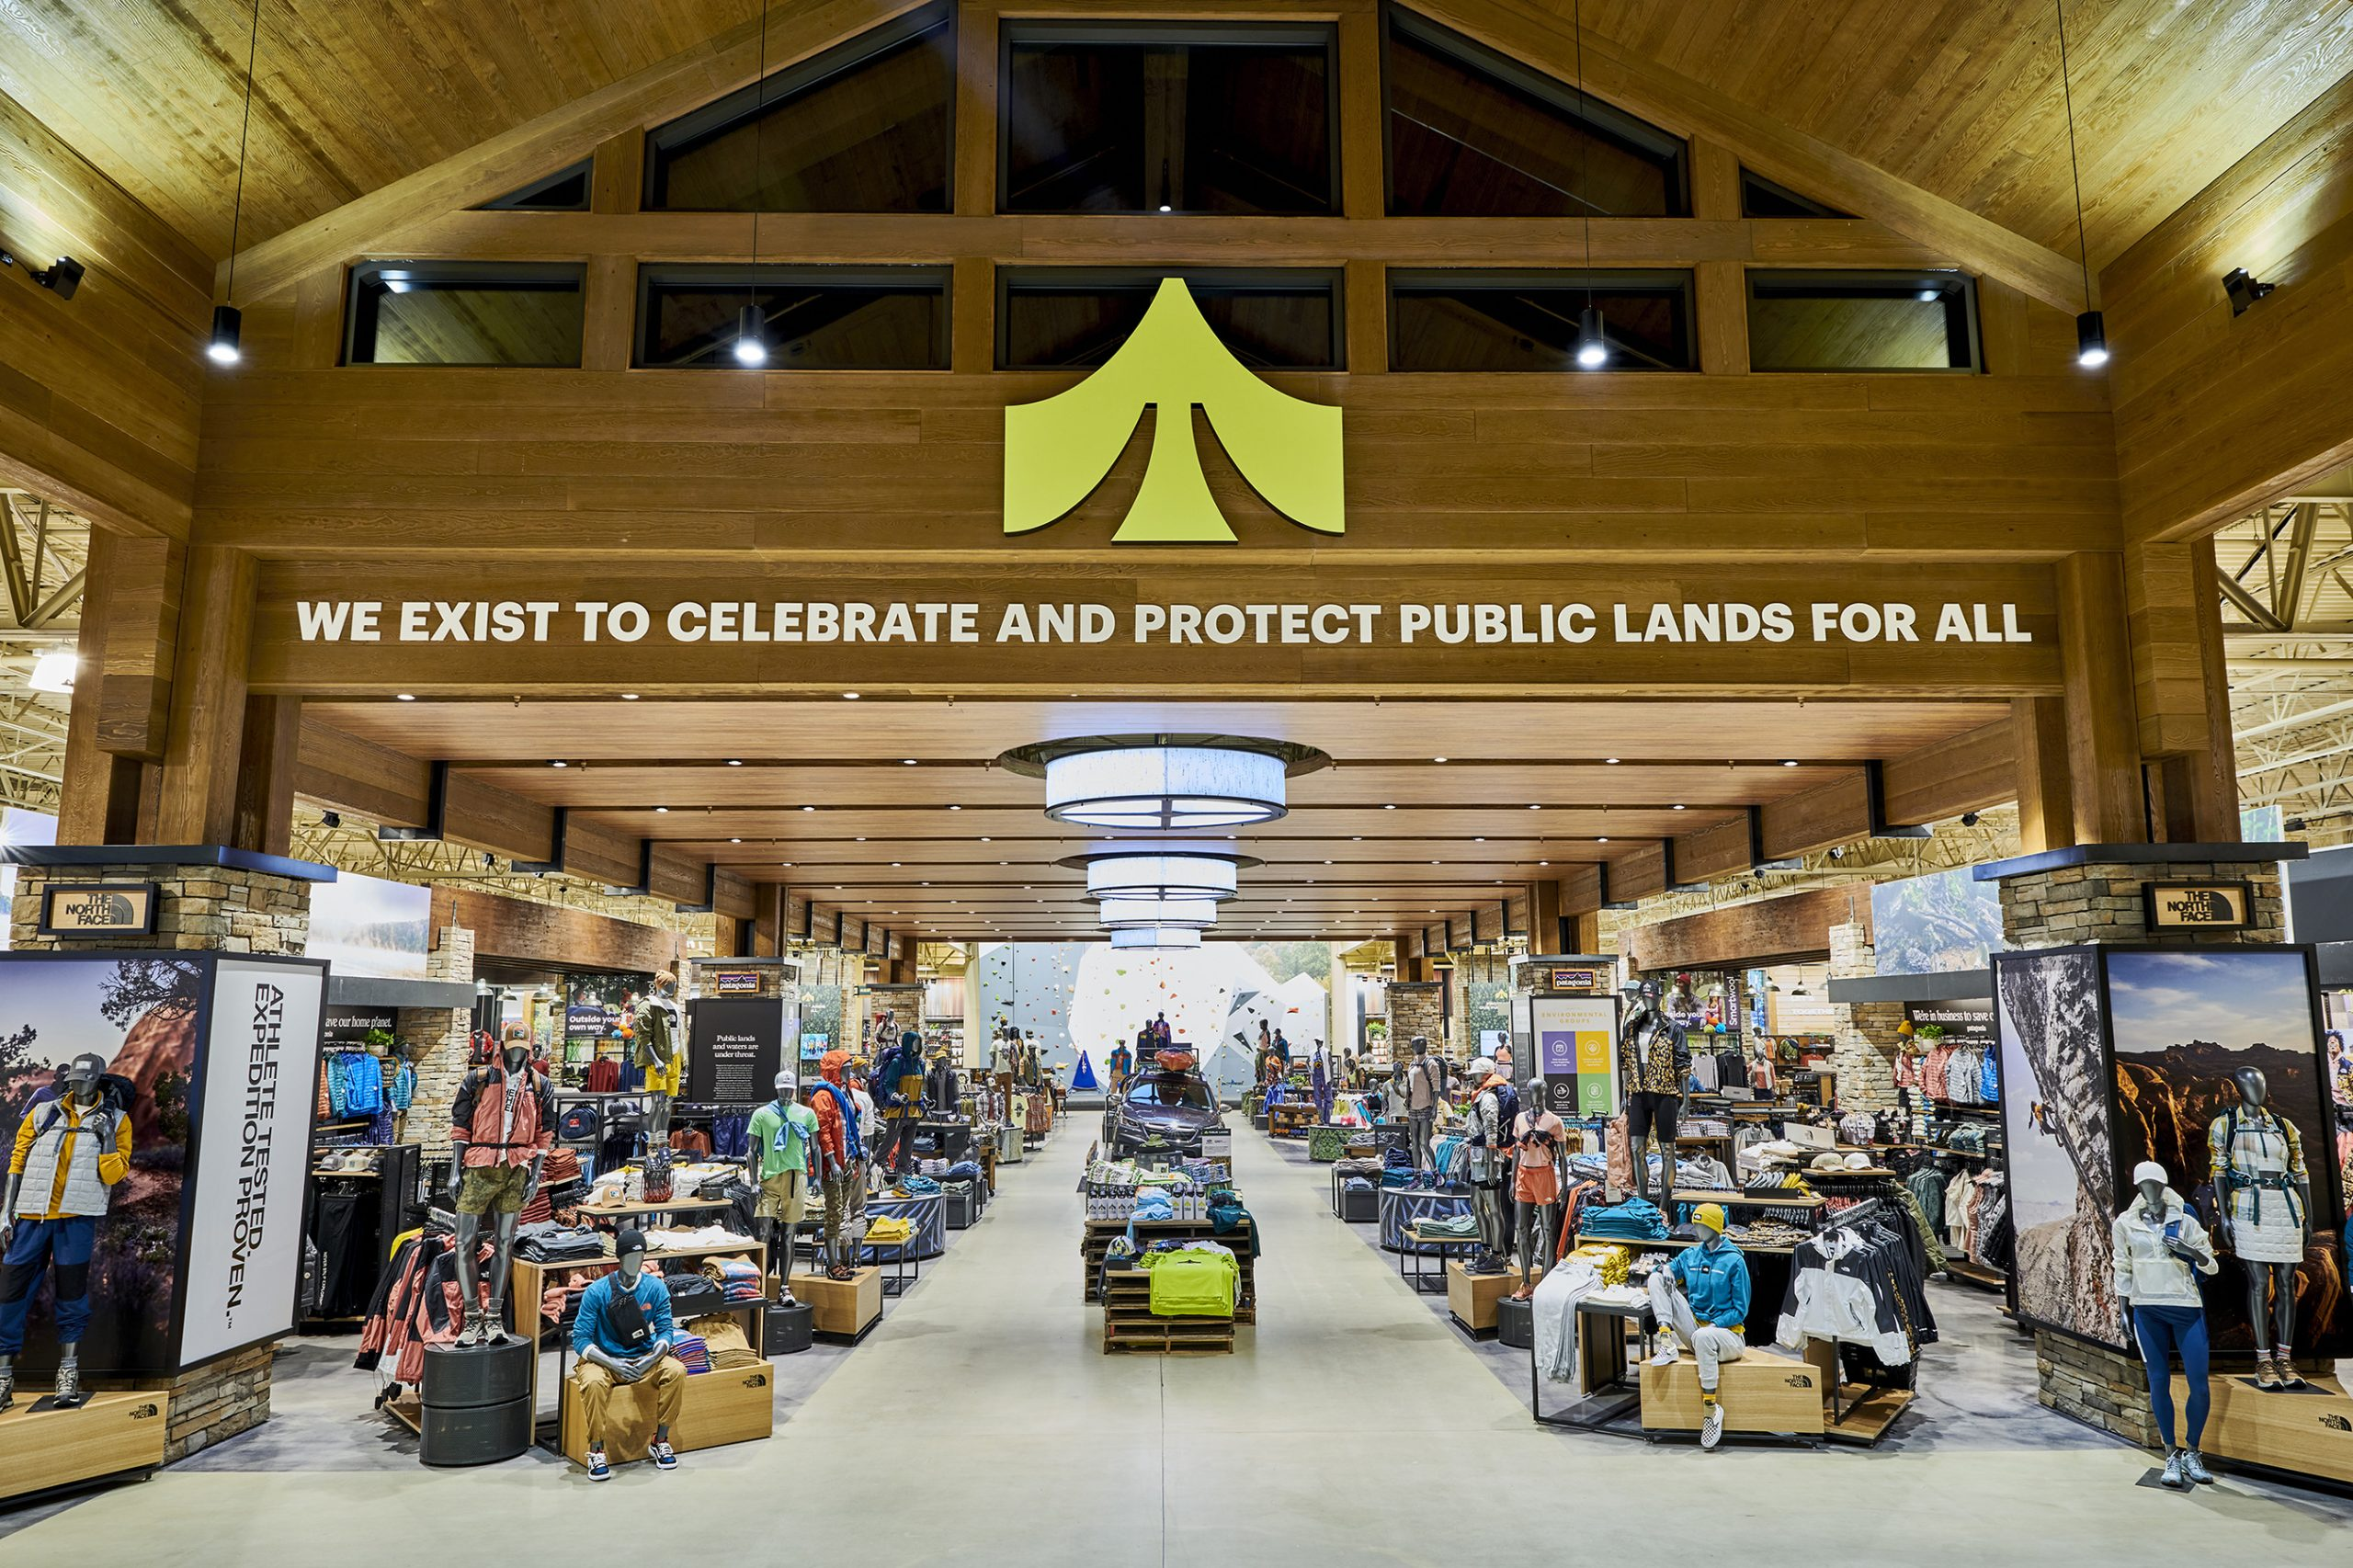 First Public Lands Concept to Open